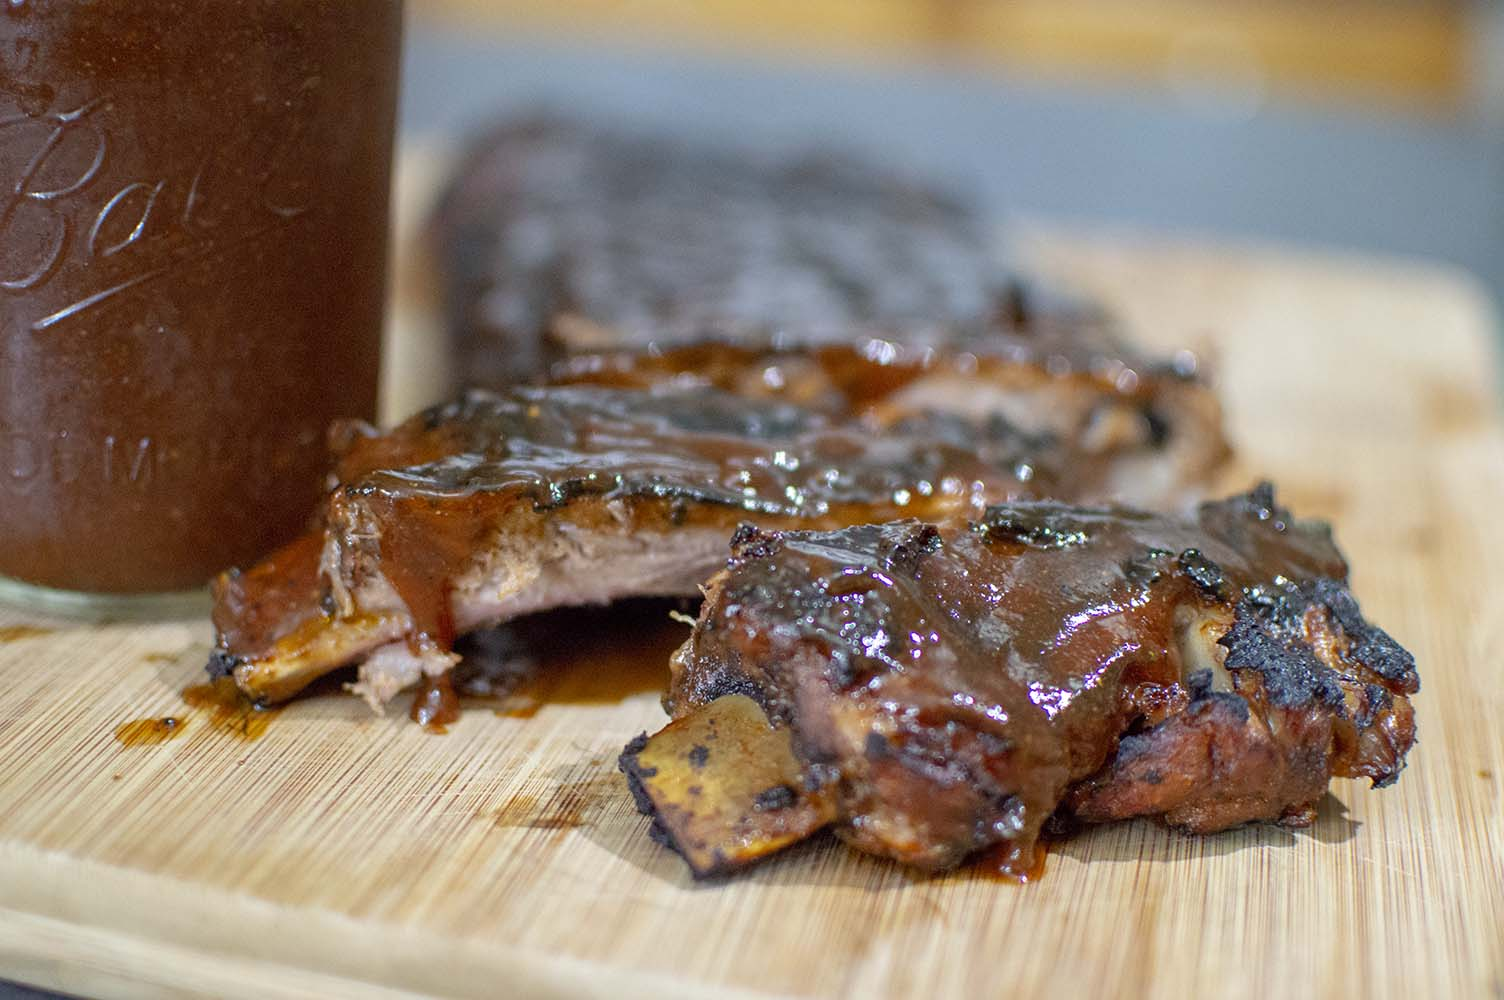 Coca-Cola BBQ Sauce over fresh smoked ribs